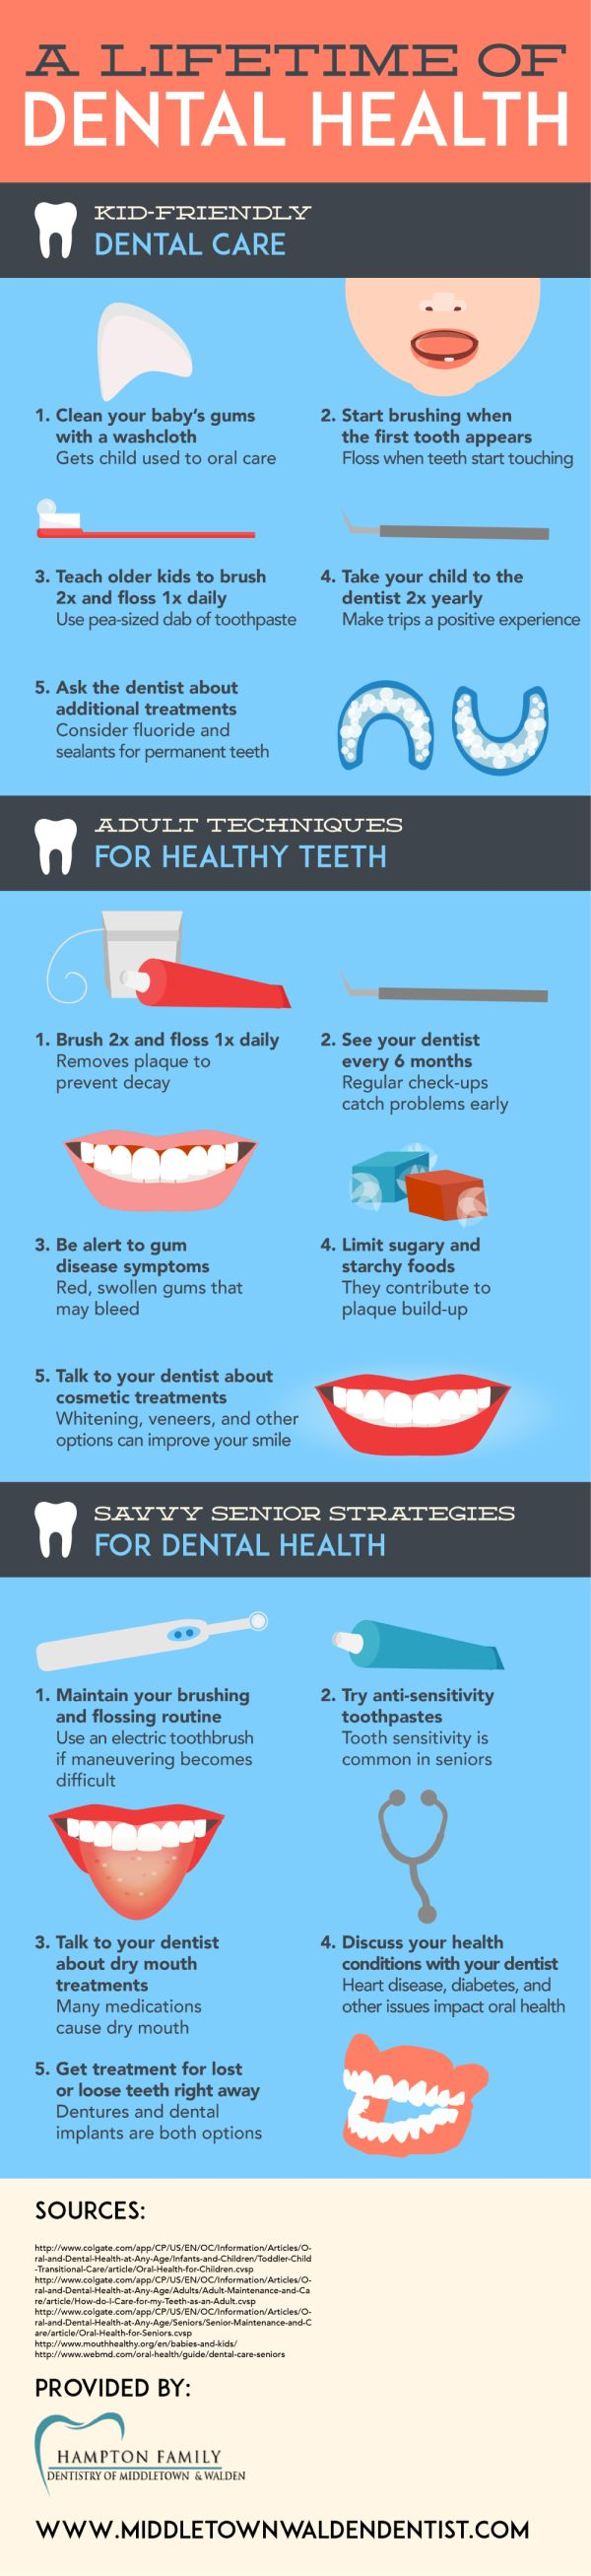 Dental Health Infographic Hampton Family Dentistry Middletown